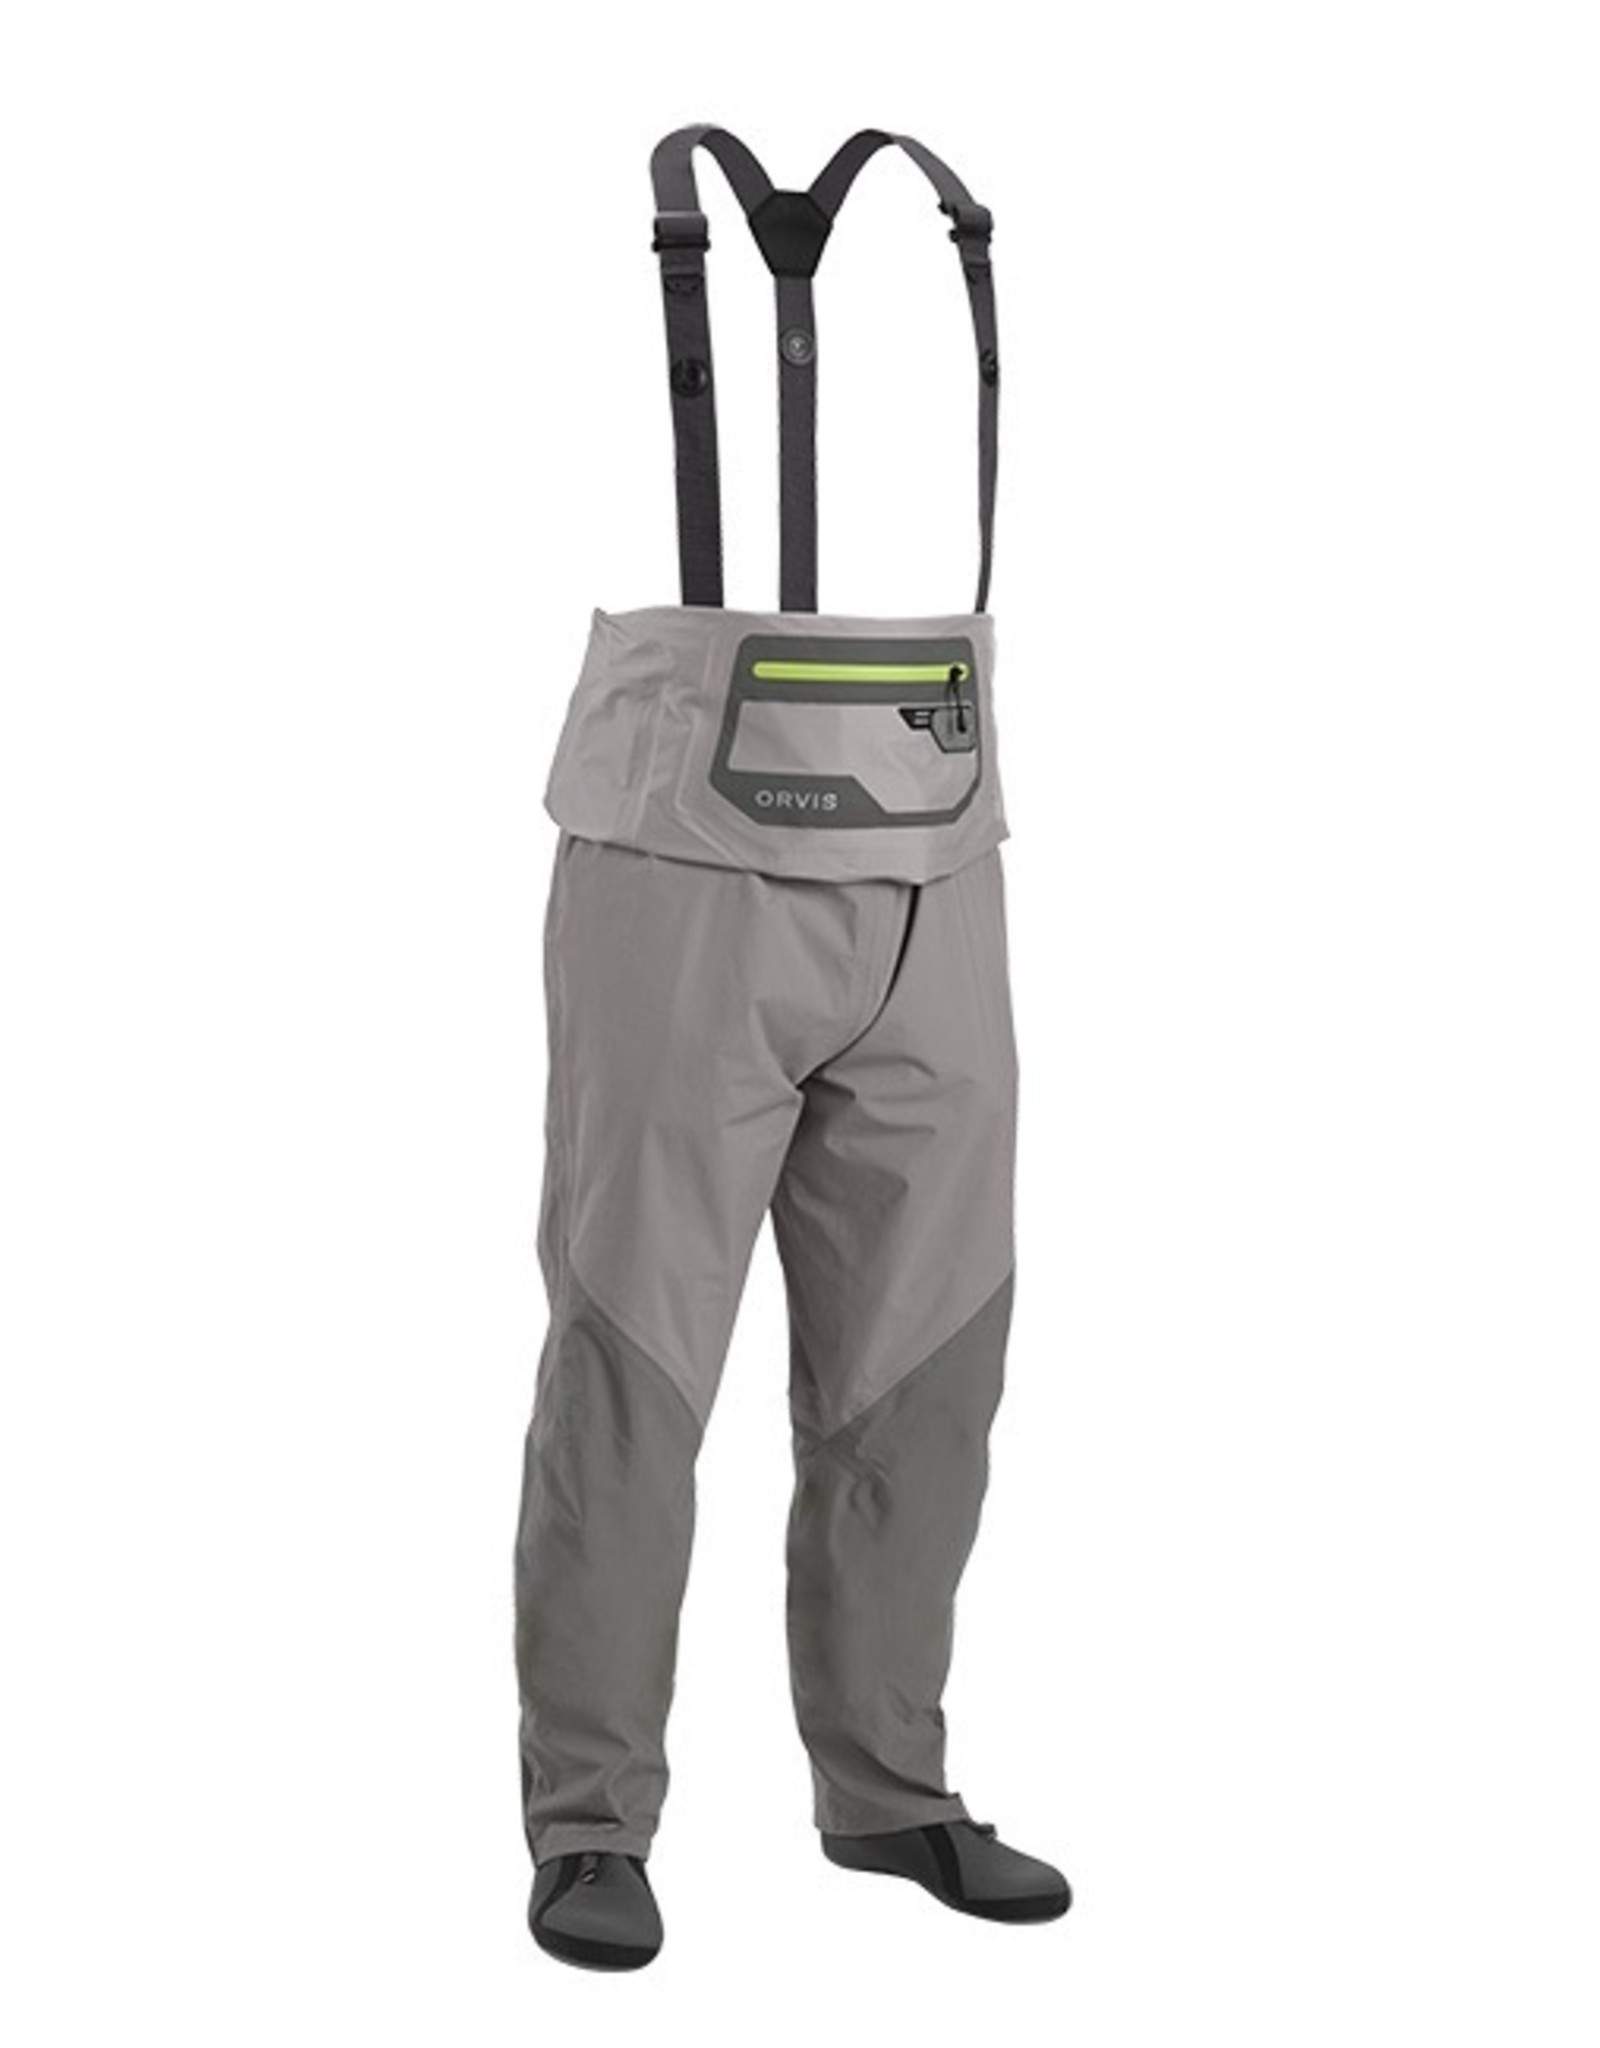 The ALL NEW Orvis Ultralight Convertible Wader offers superior comfort and performance on the water.